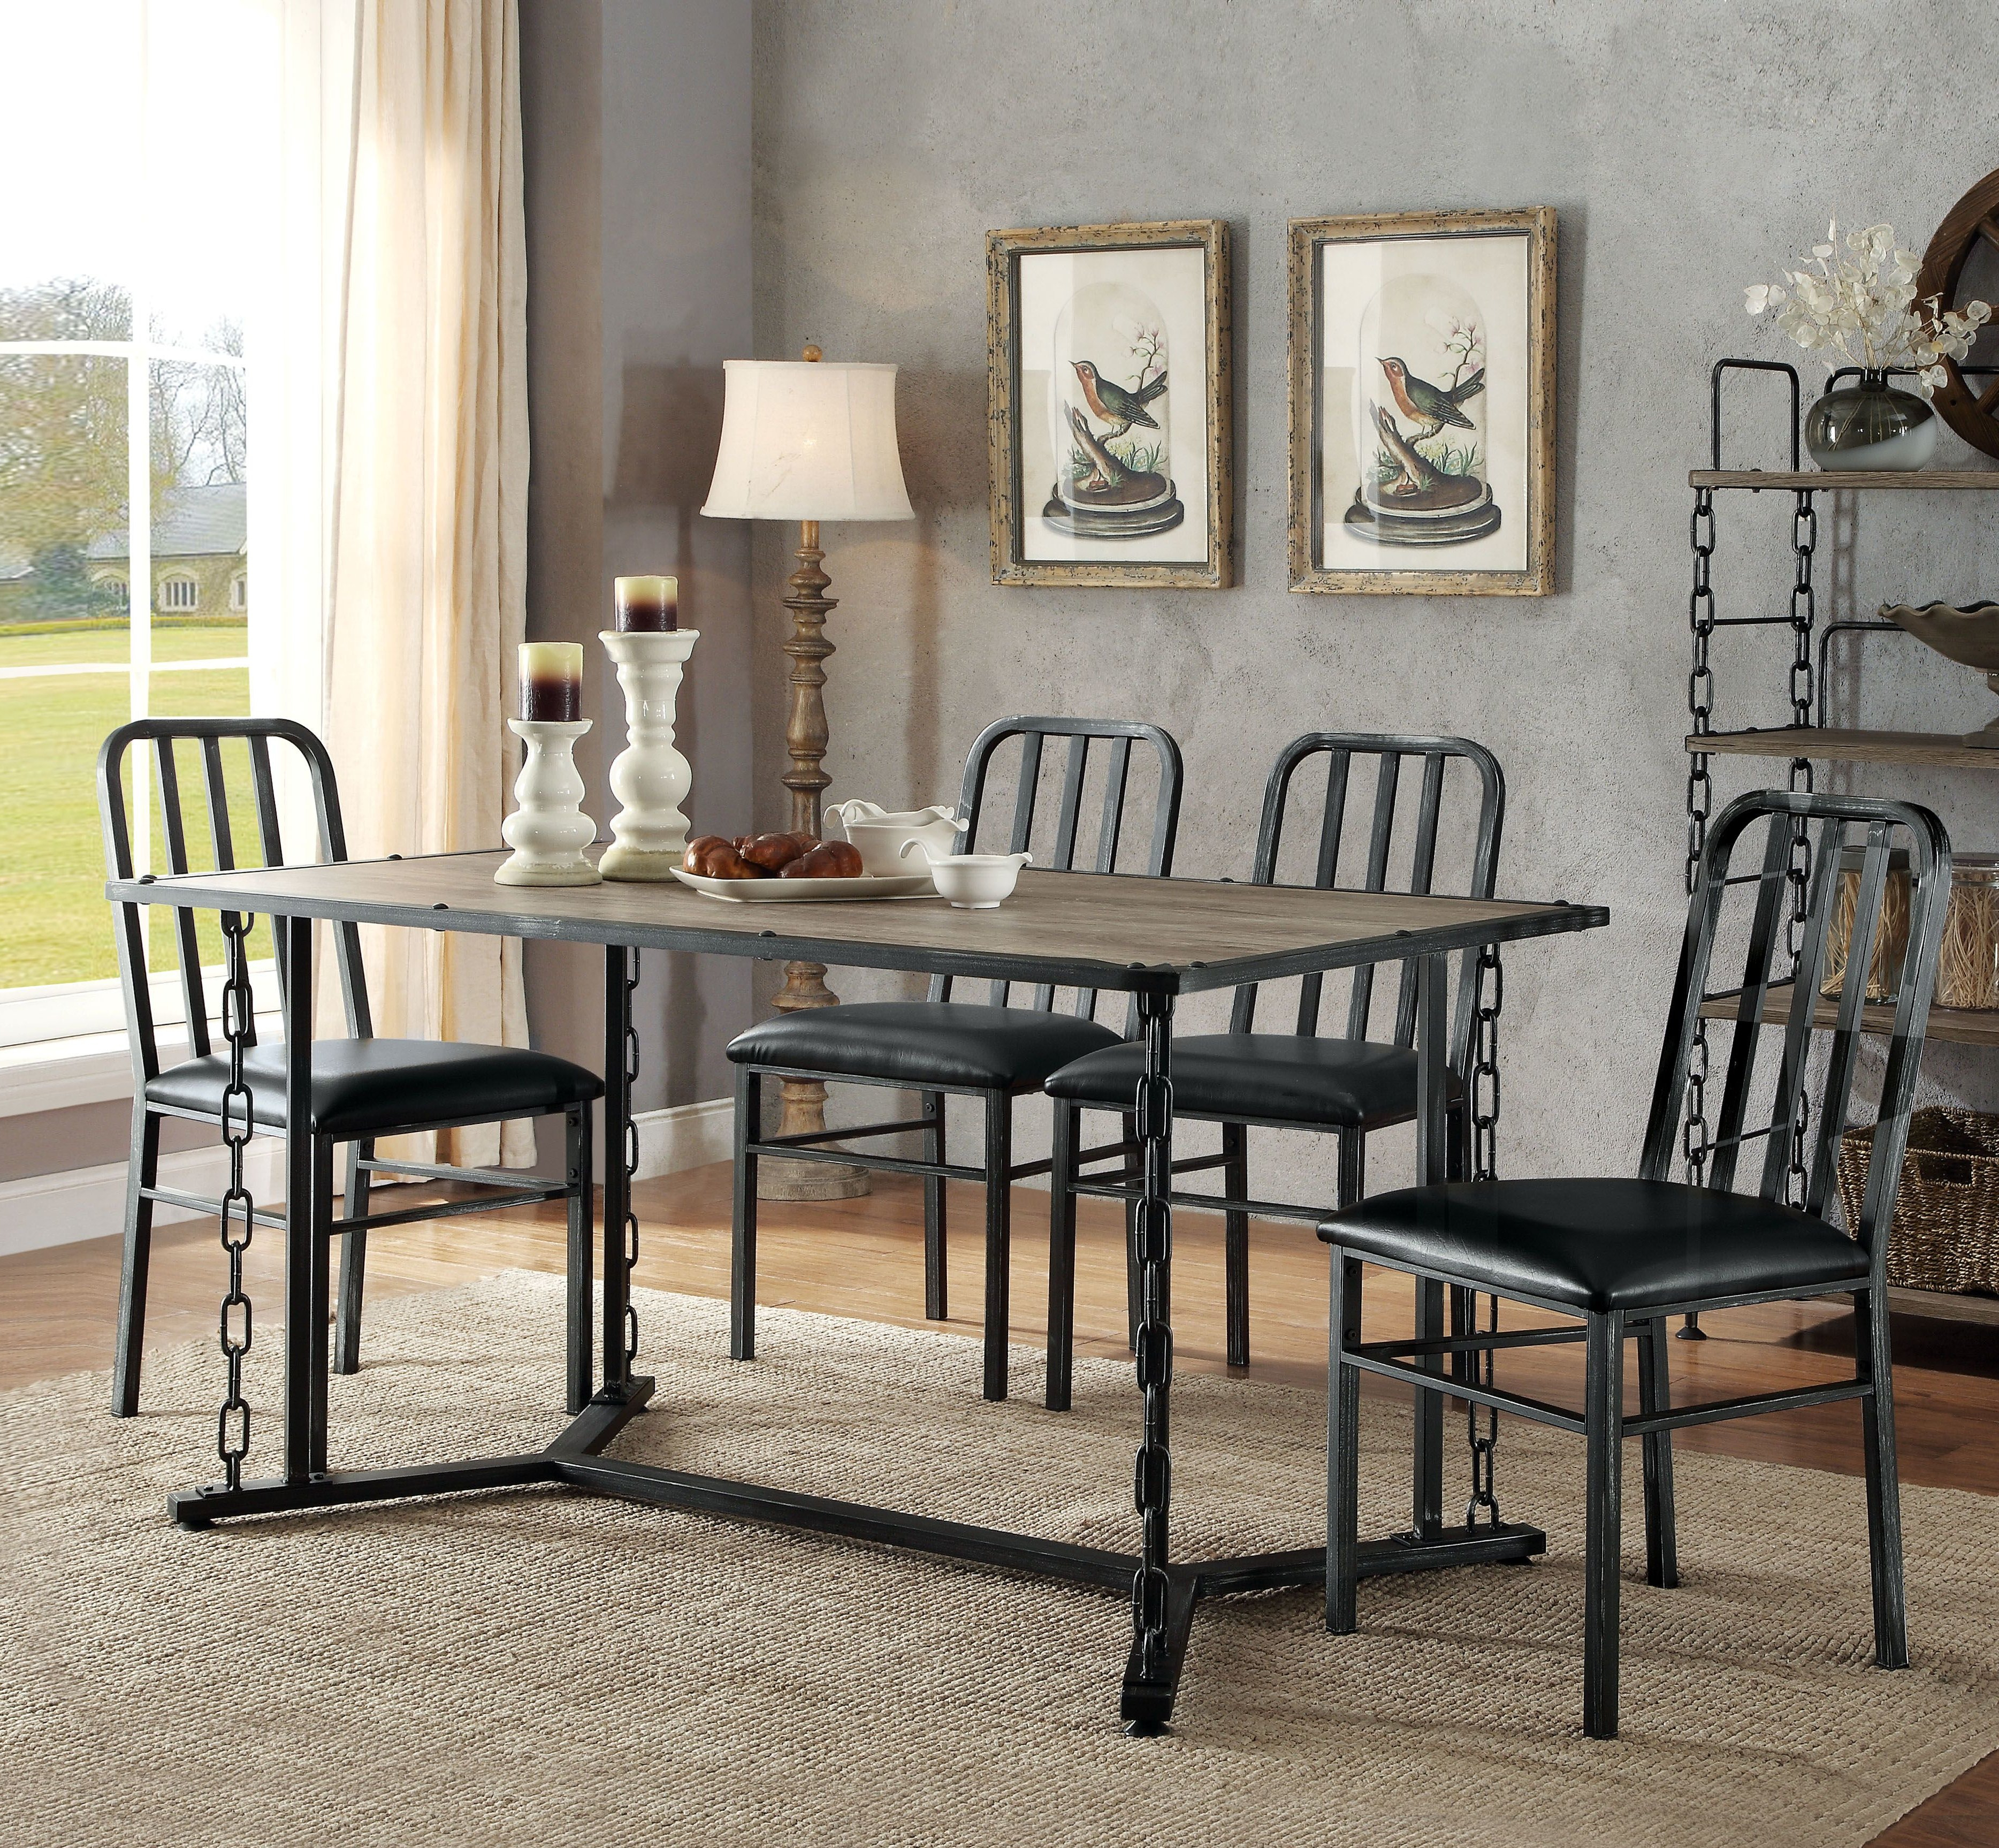 Virginia 5 Piece Dining Set Intended For 2018 Ganya 5 Piece Dining Sets (View 15 of 20)